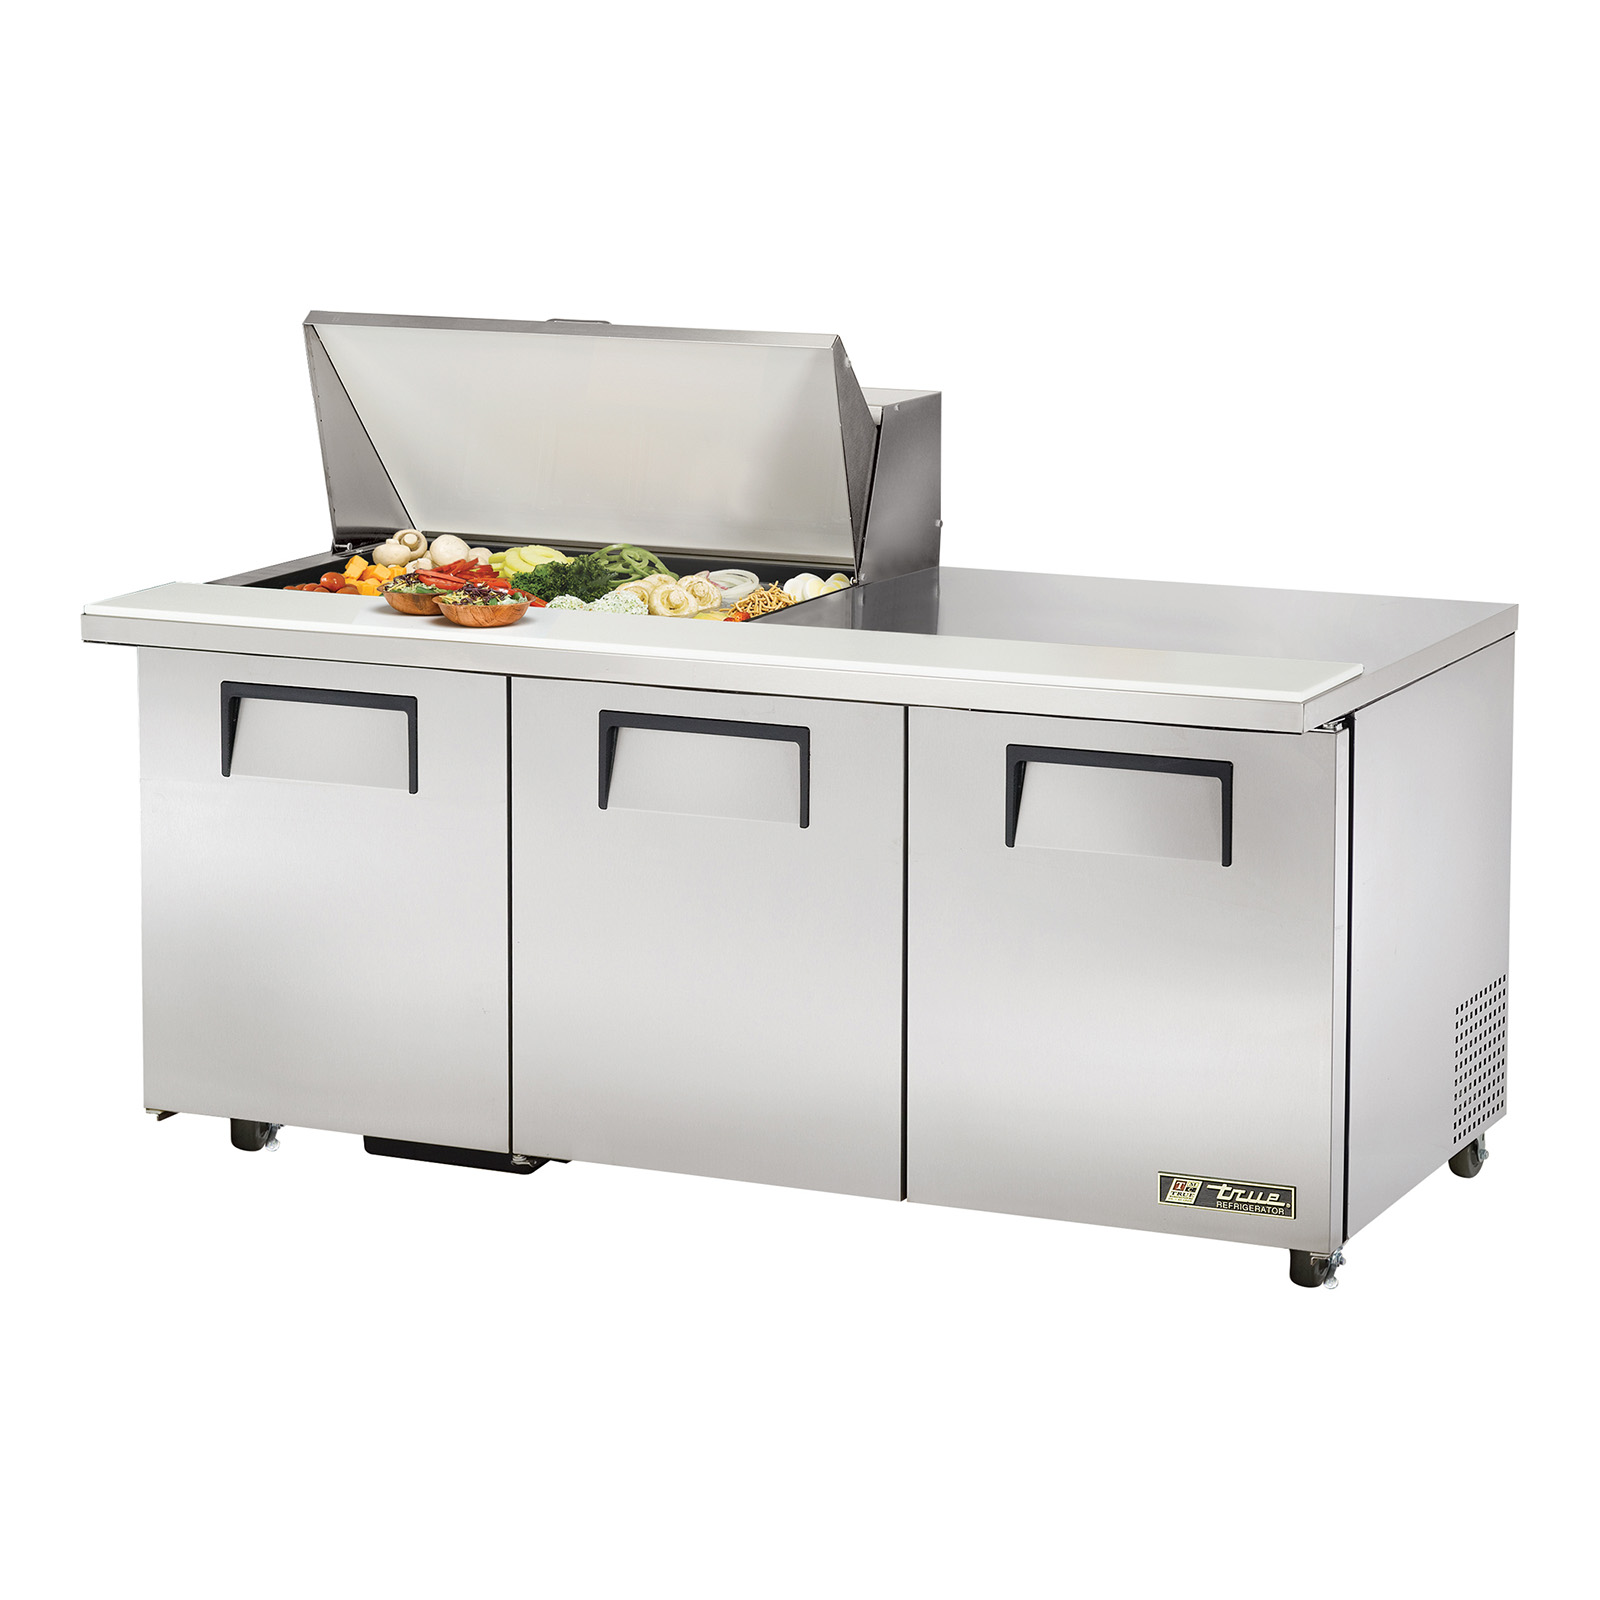 TSSU-72-15M-B-ADA True - ADA Compliant Mega Top Sandwich/Salad Unit (15) 1/6 size (4